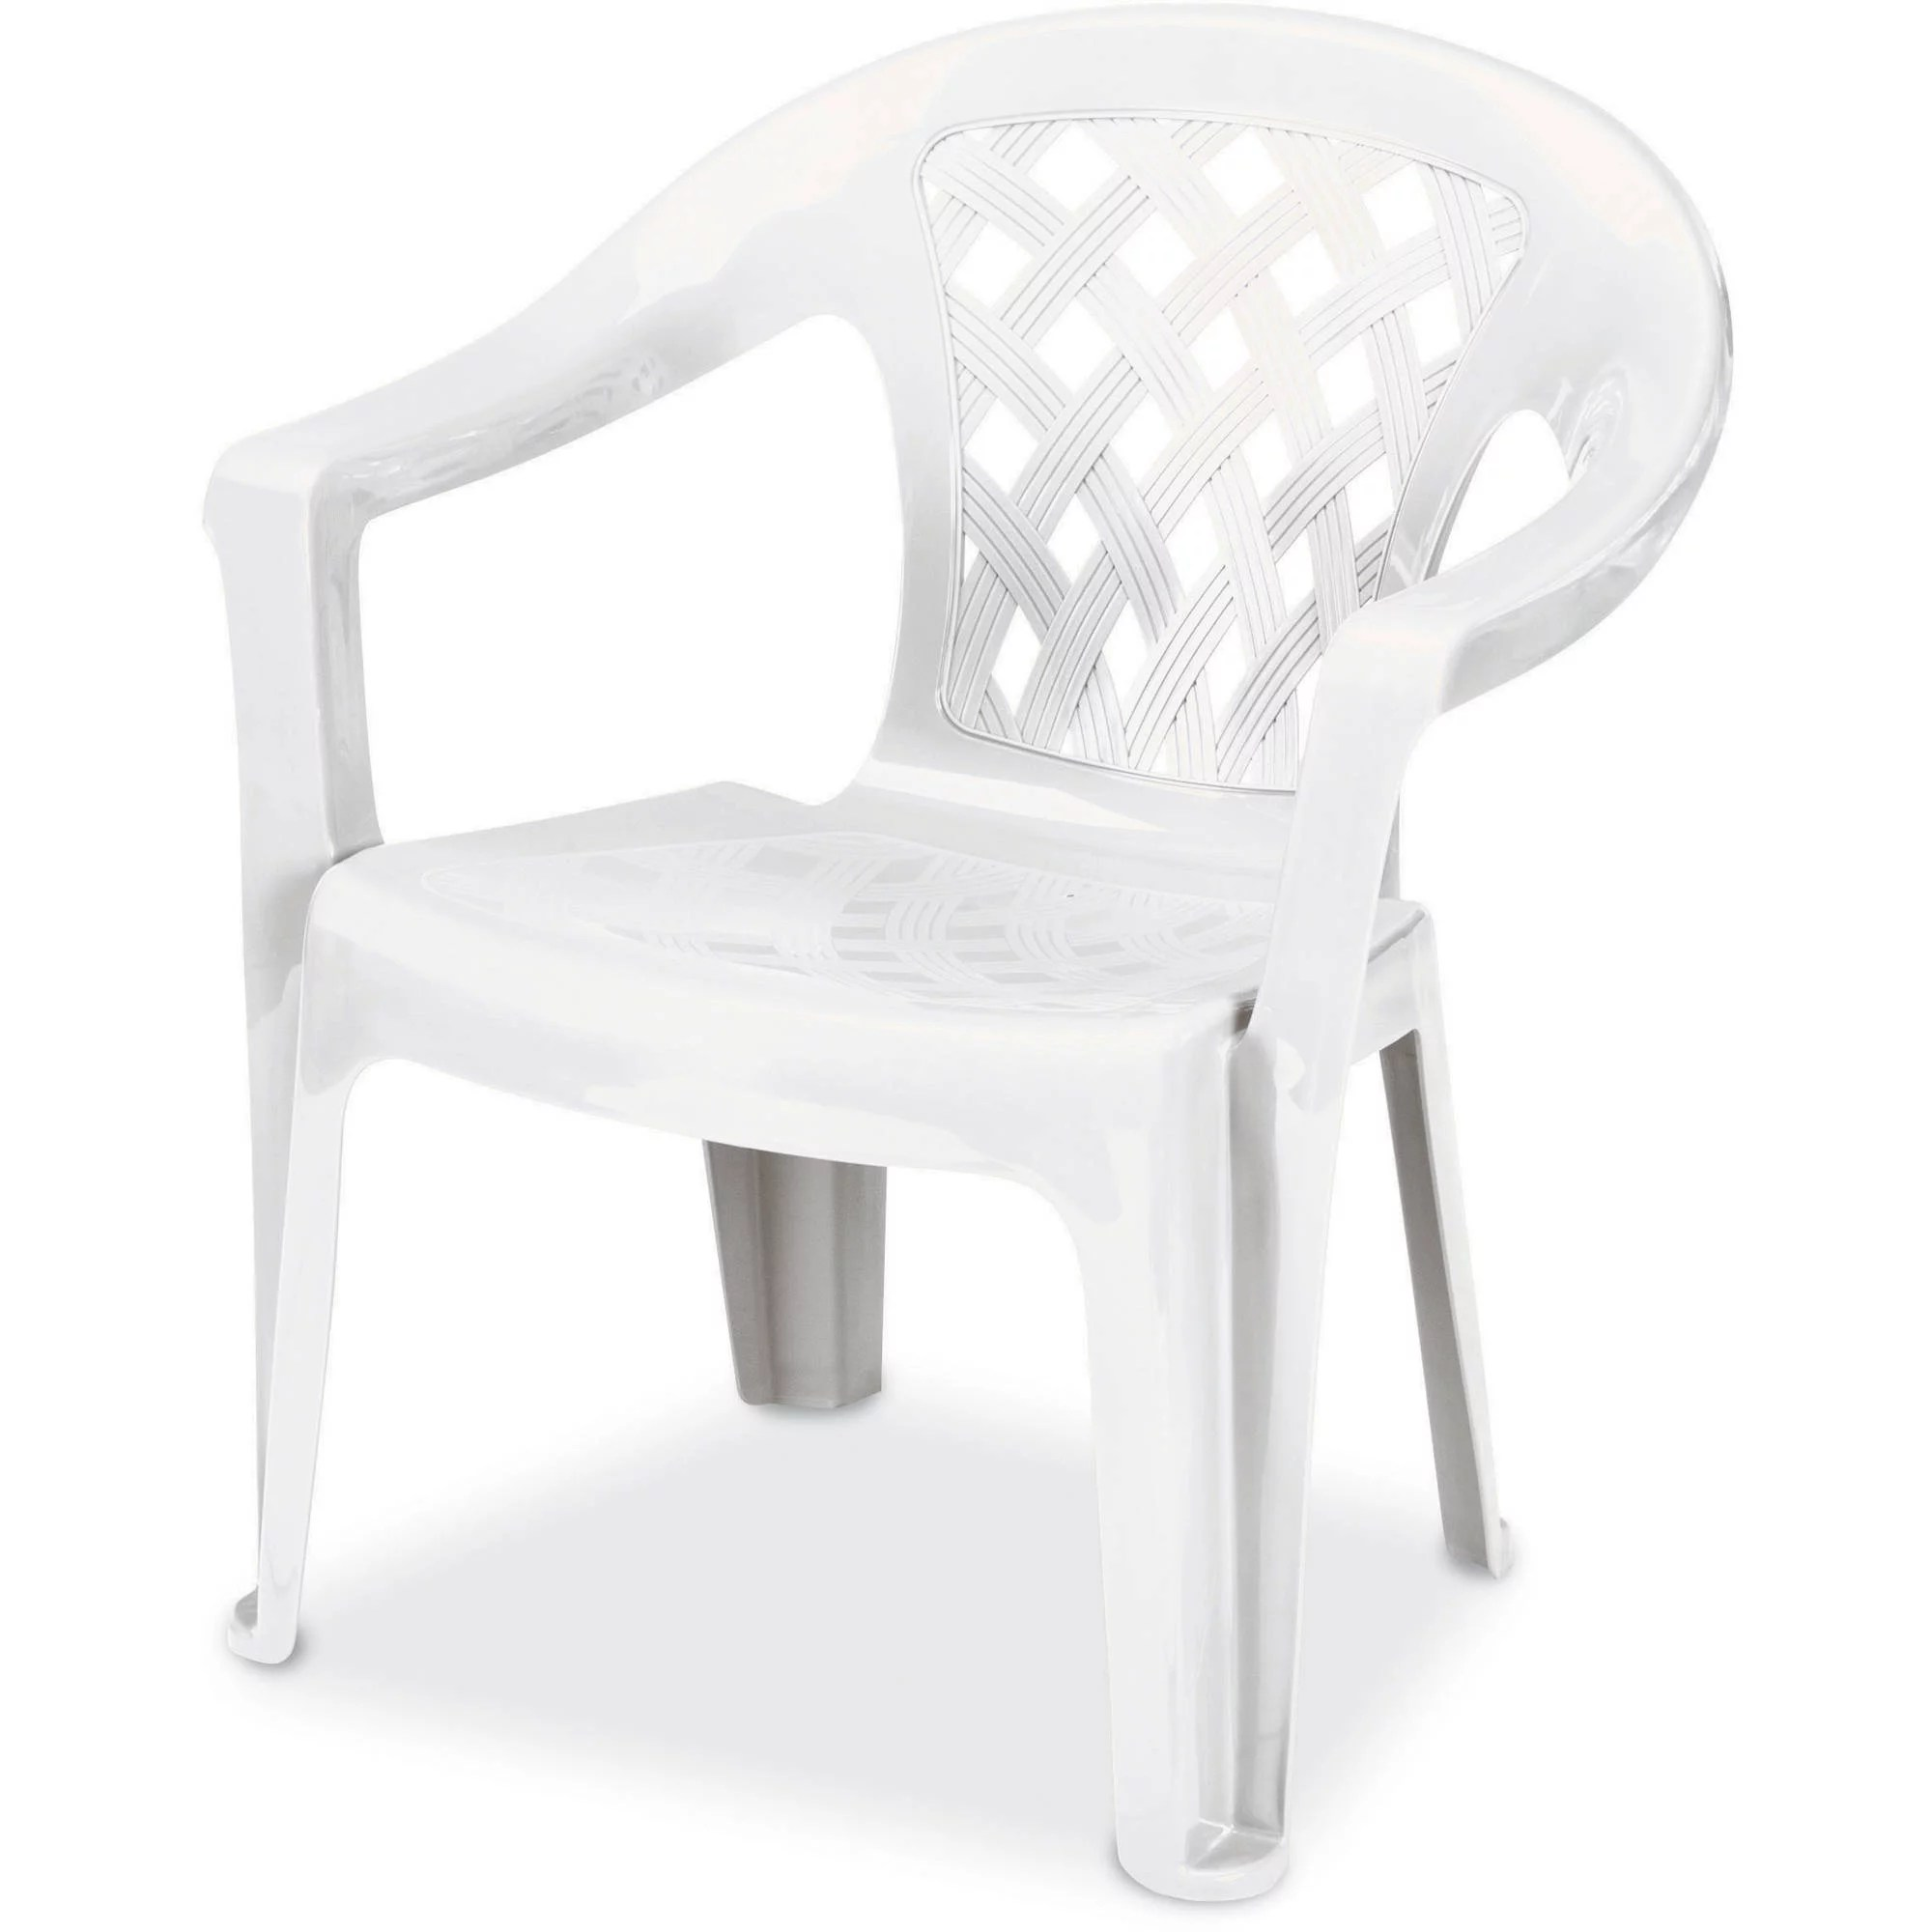 low back lawn chair ergo posture us leisure resin big and tall lowback white walmart com